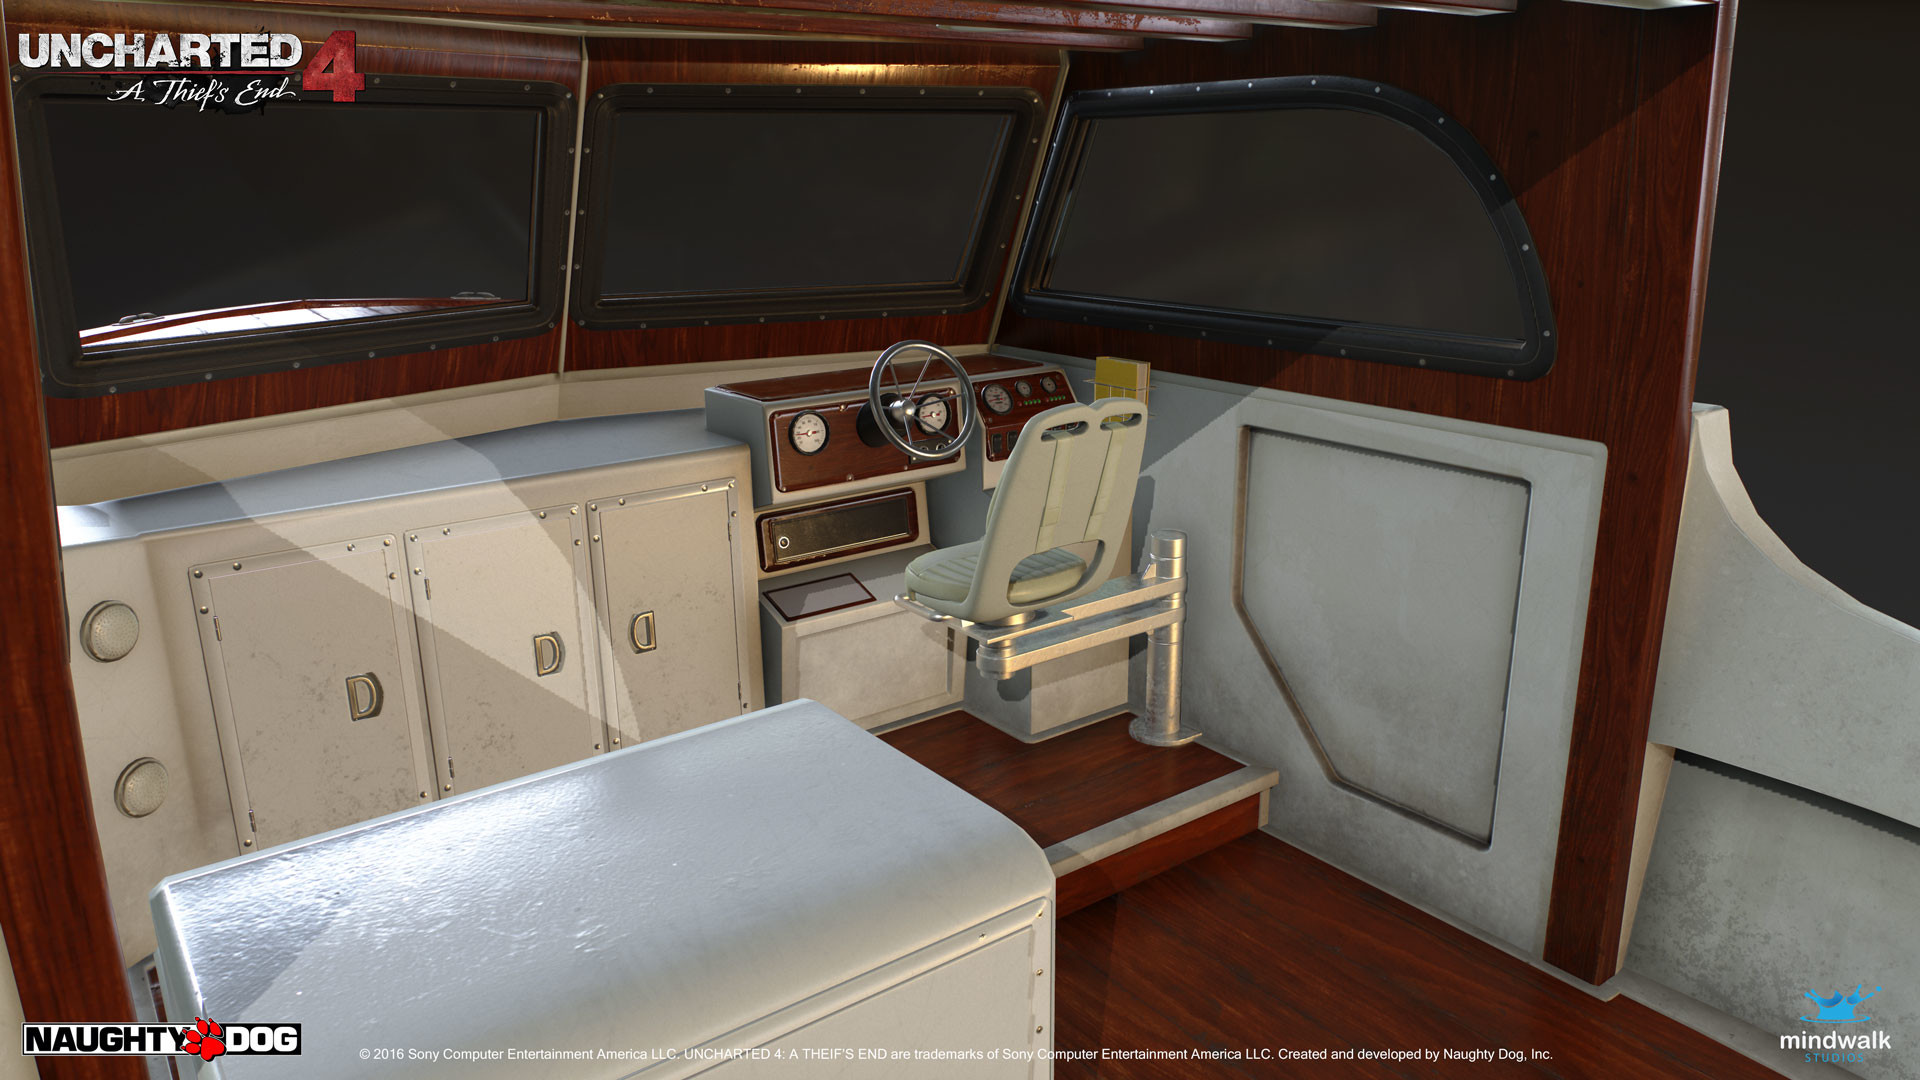 Amy payne mw hero boat interior